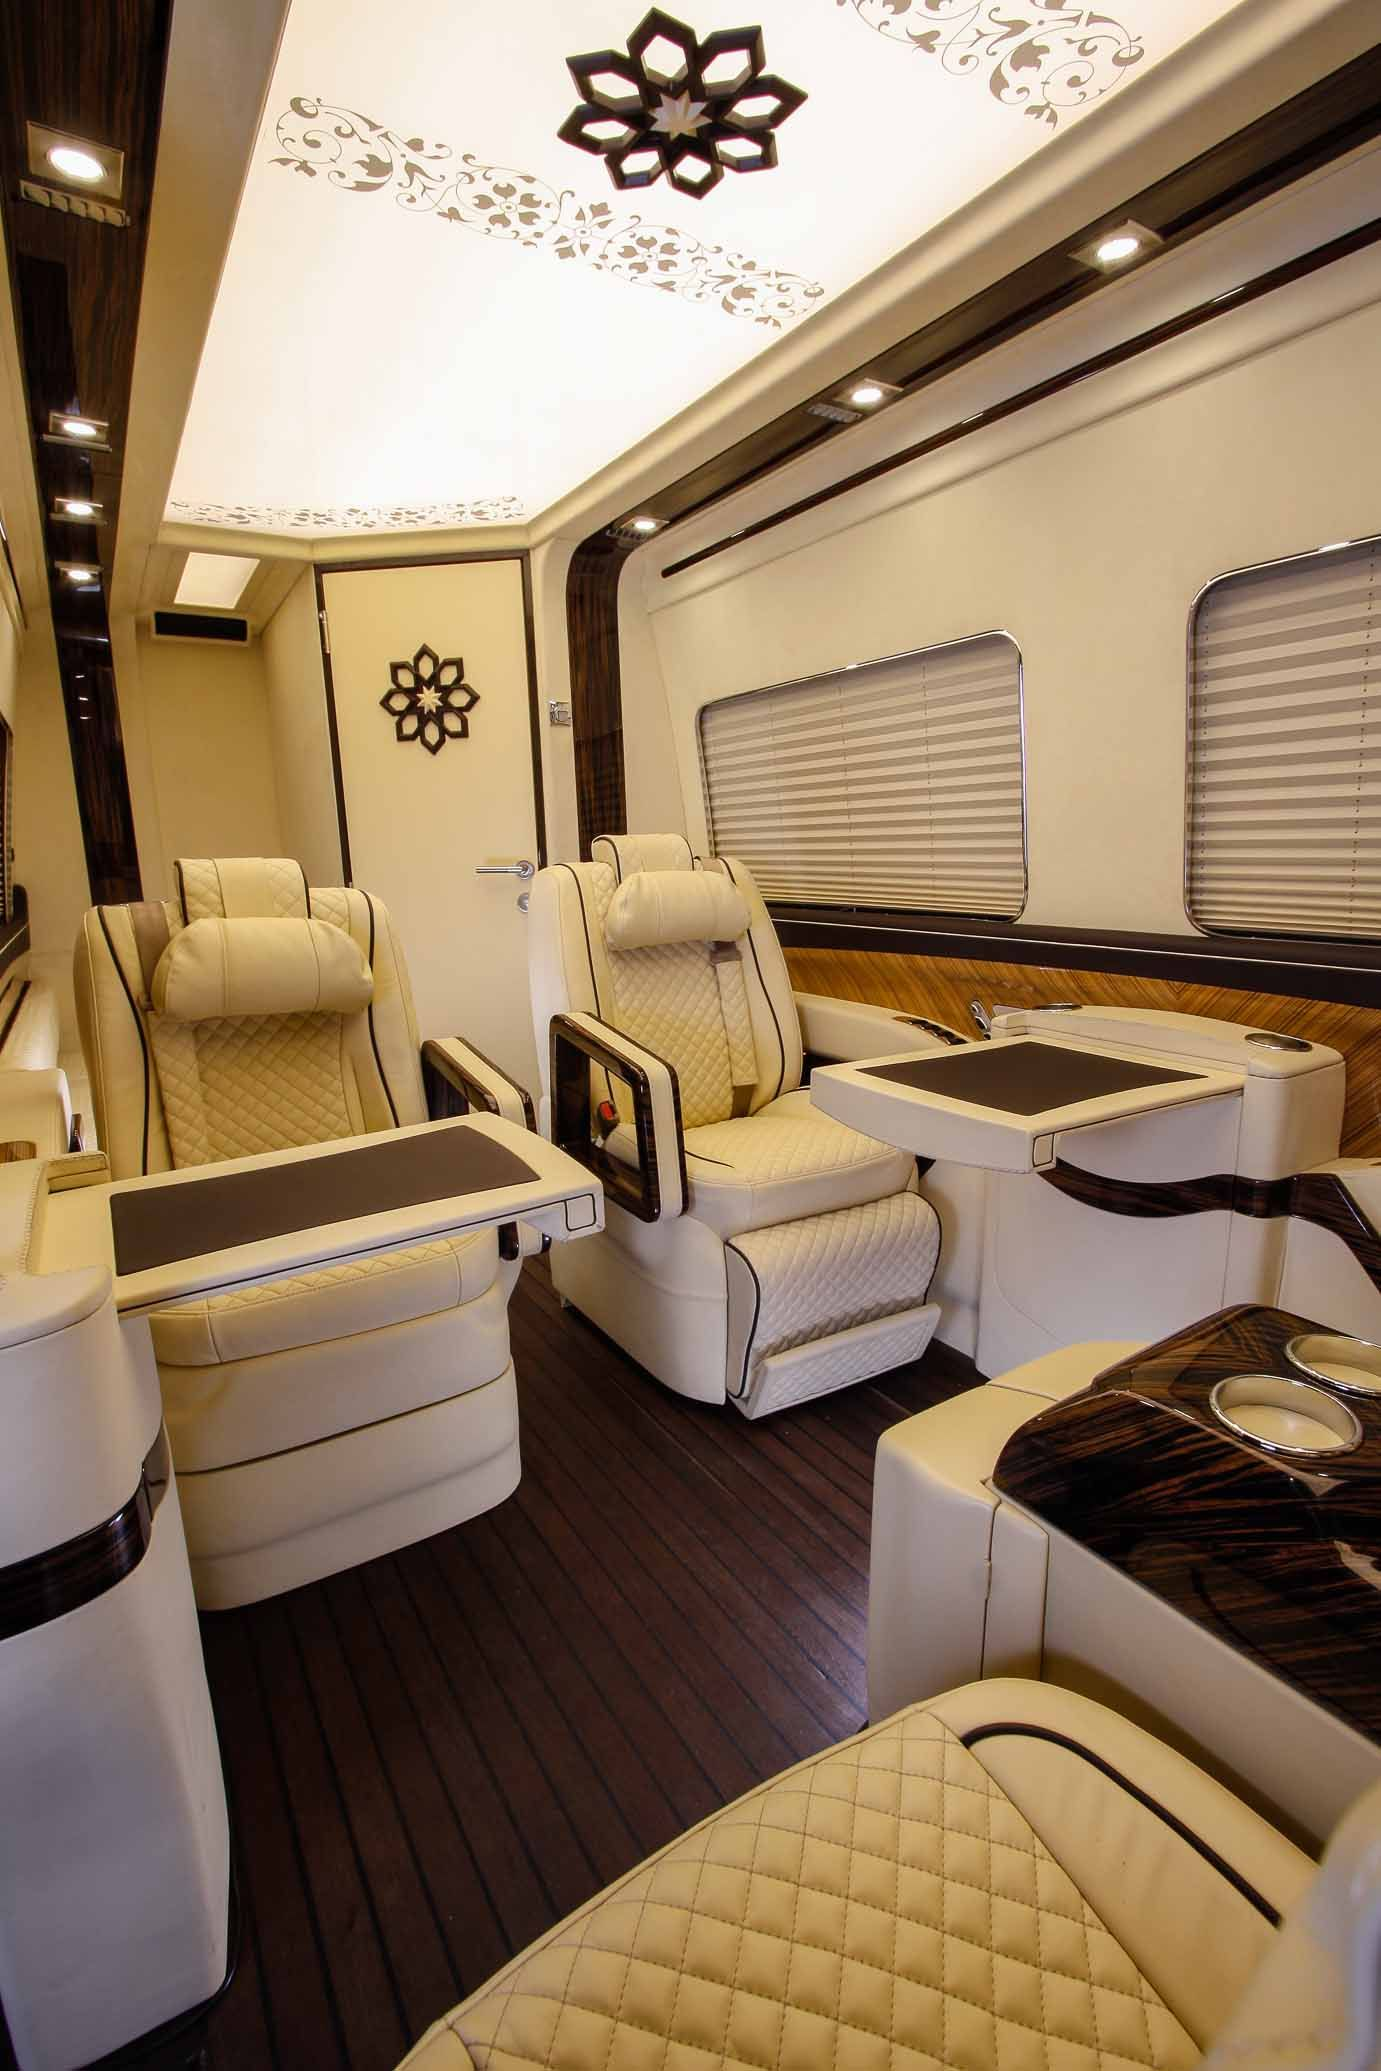 Mercedes v class gets full treatment from carlex design - Mercedes V Class Red Interior 7 Mercedes Benz Interiors Pinterest Red Interiors Auto Design And Mercedes Benz